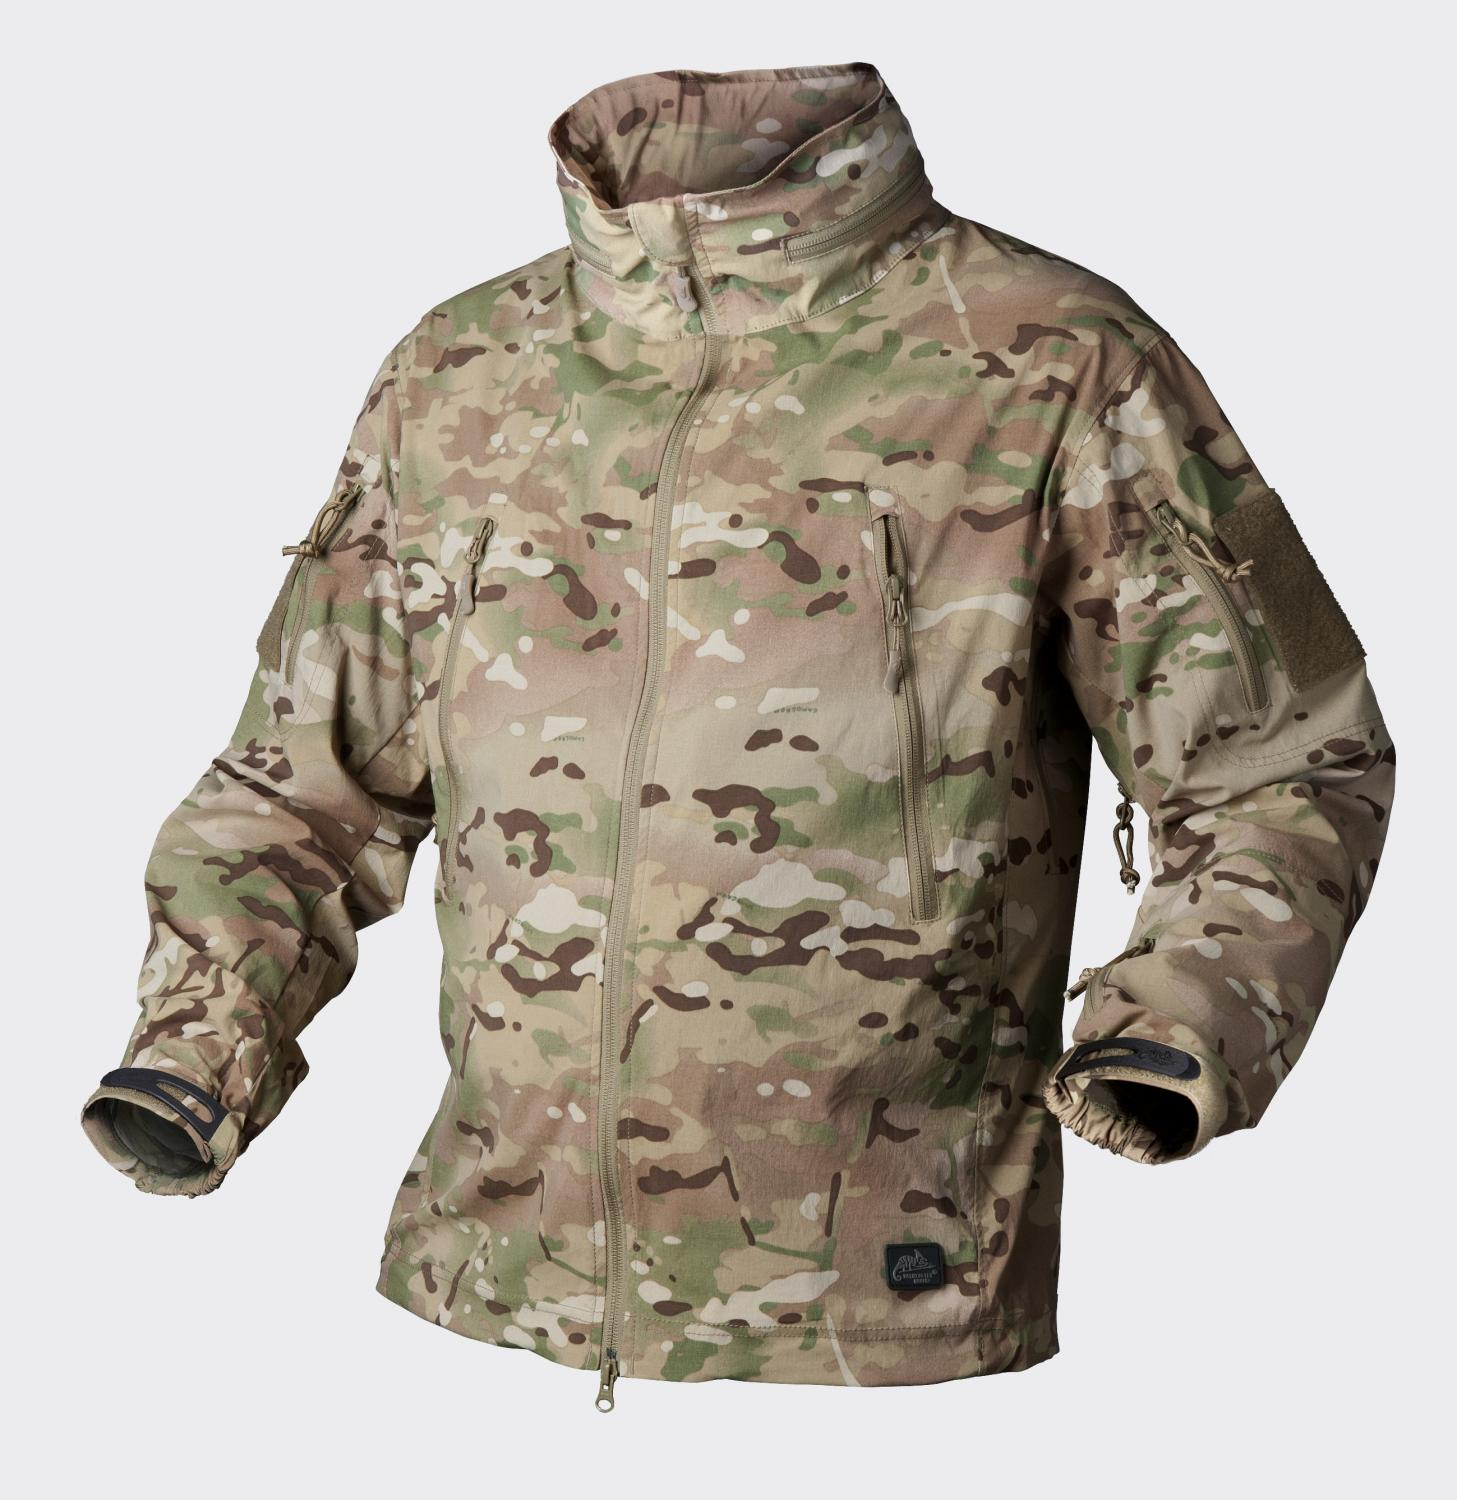 TROOPER - SoftShell Camogrom